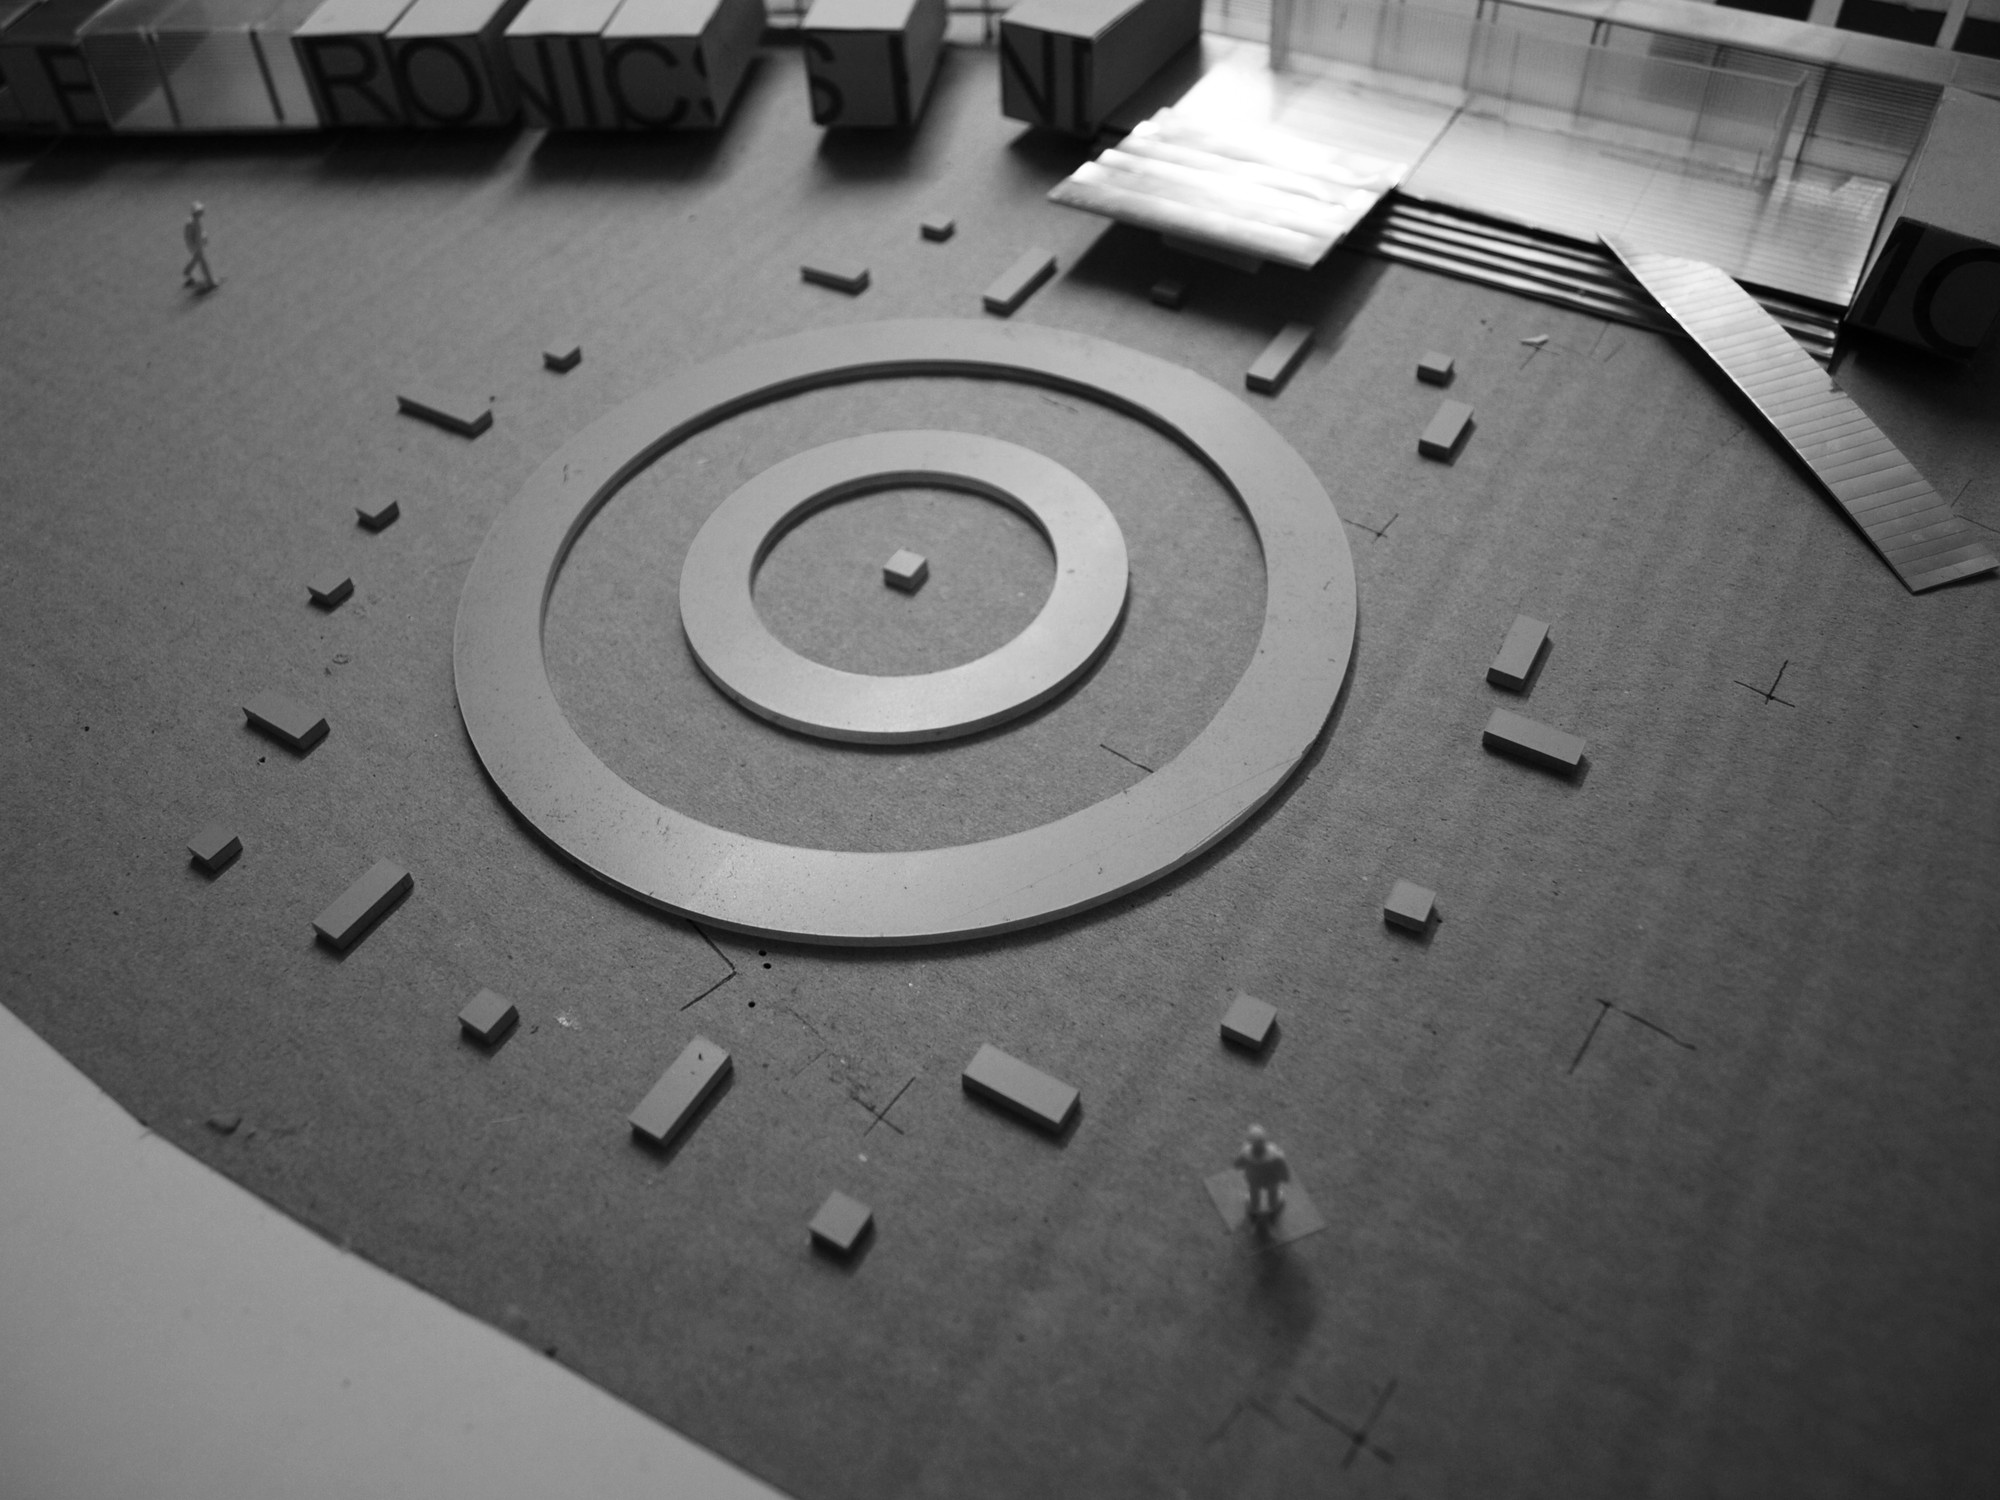 Model of the Transformer's concrete foundations. Image Courtesy of OMA